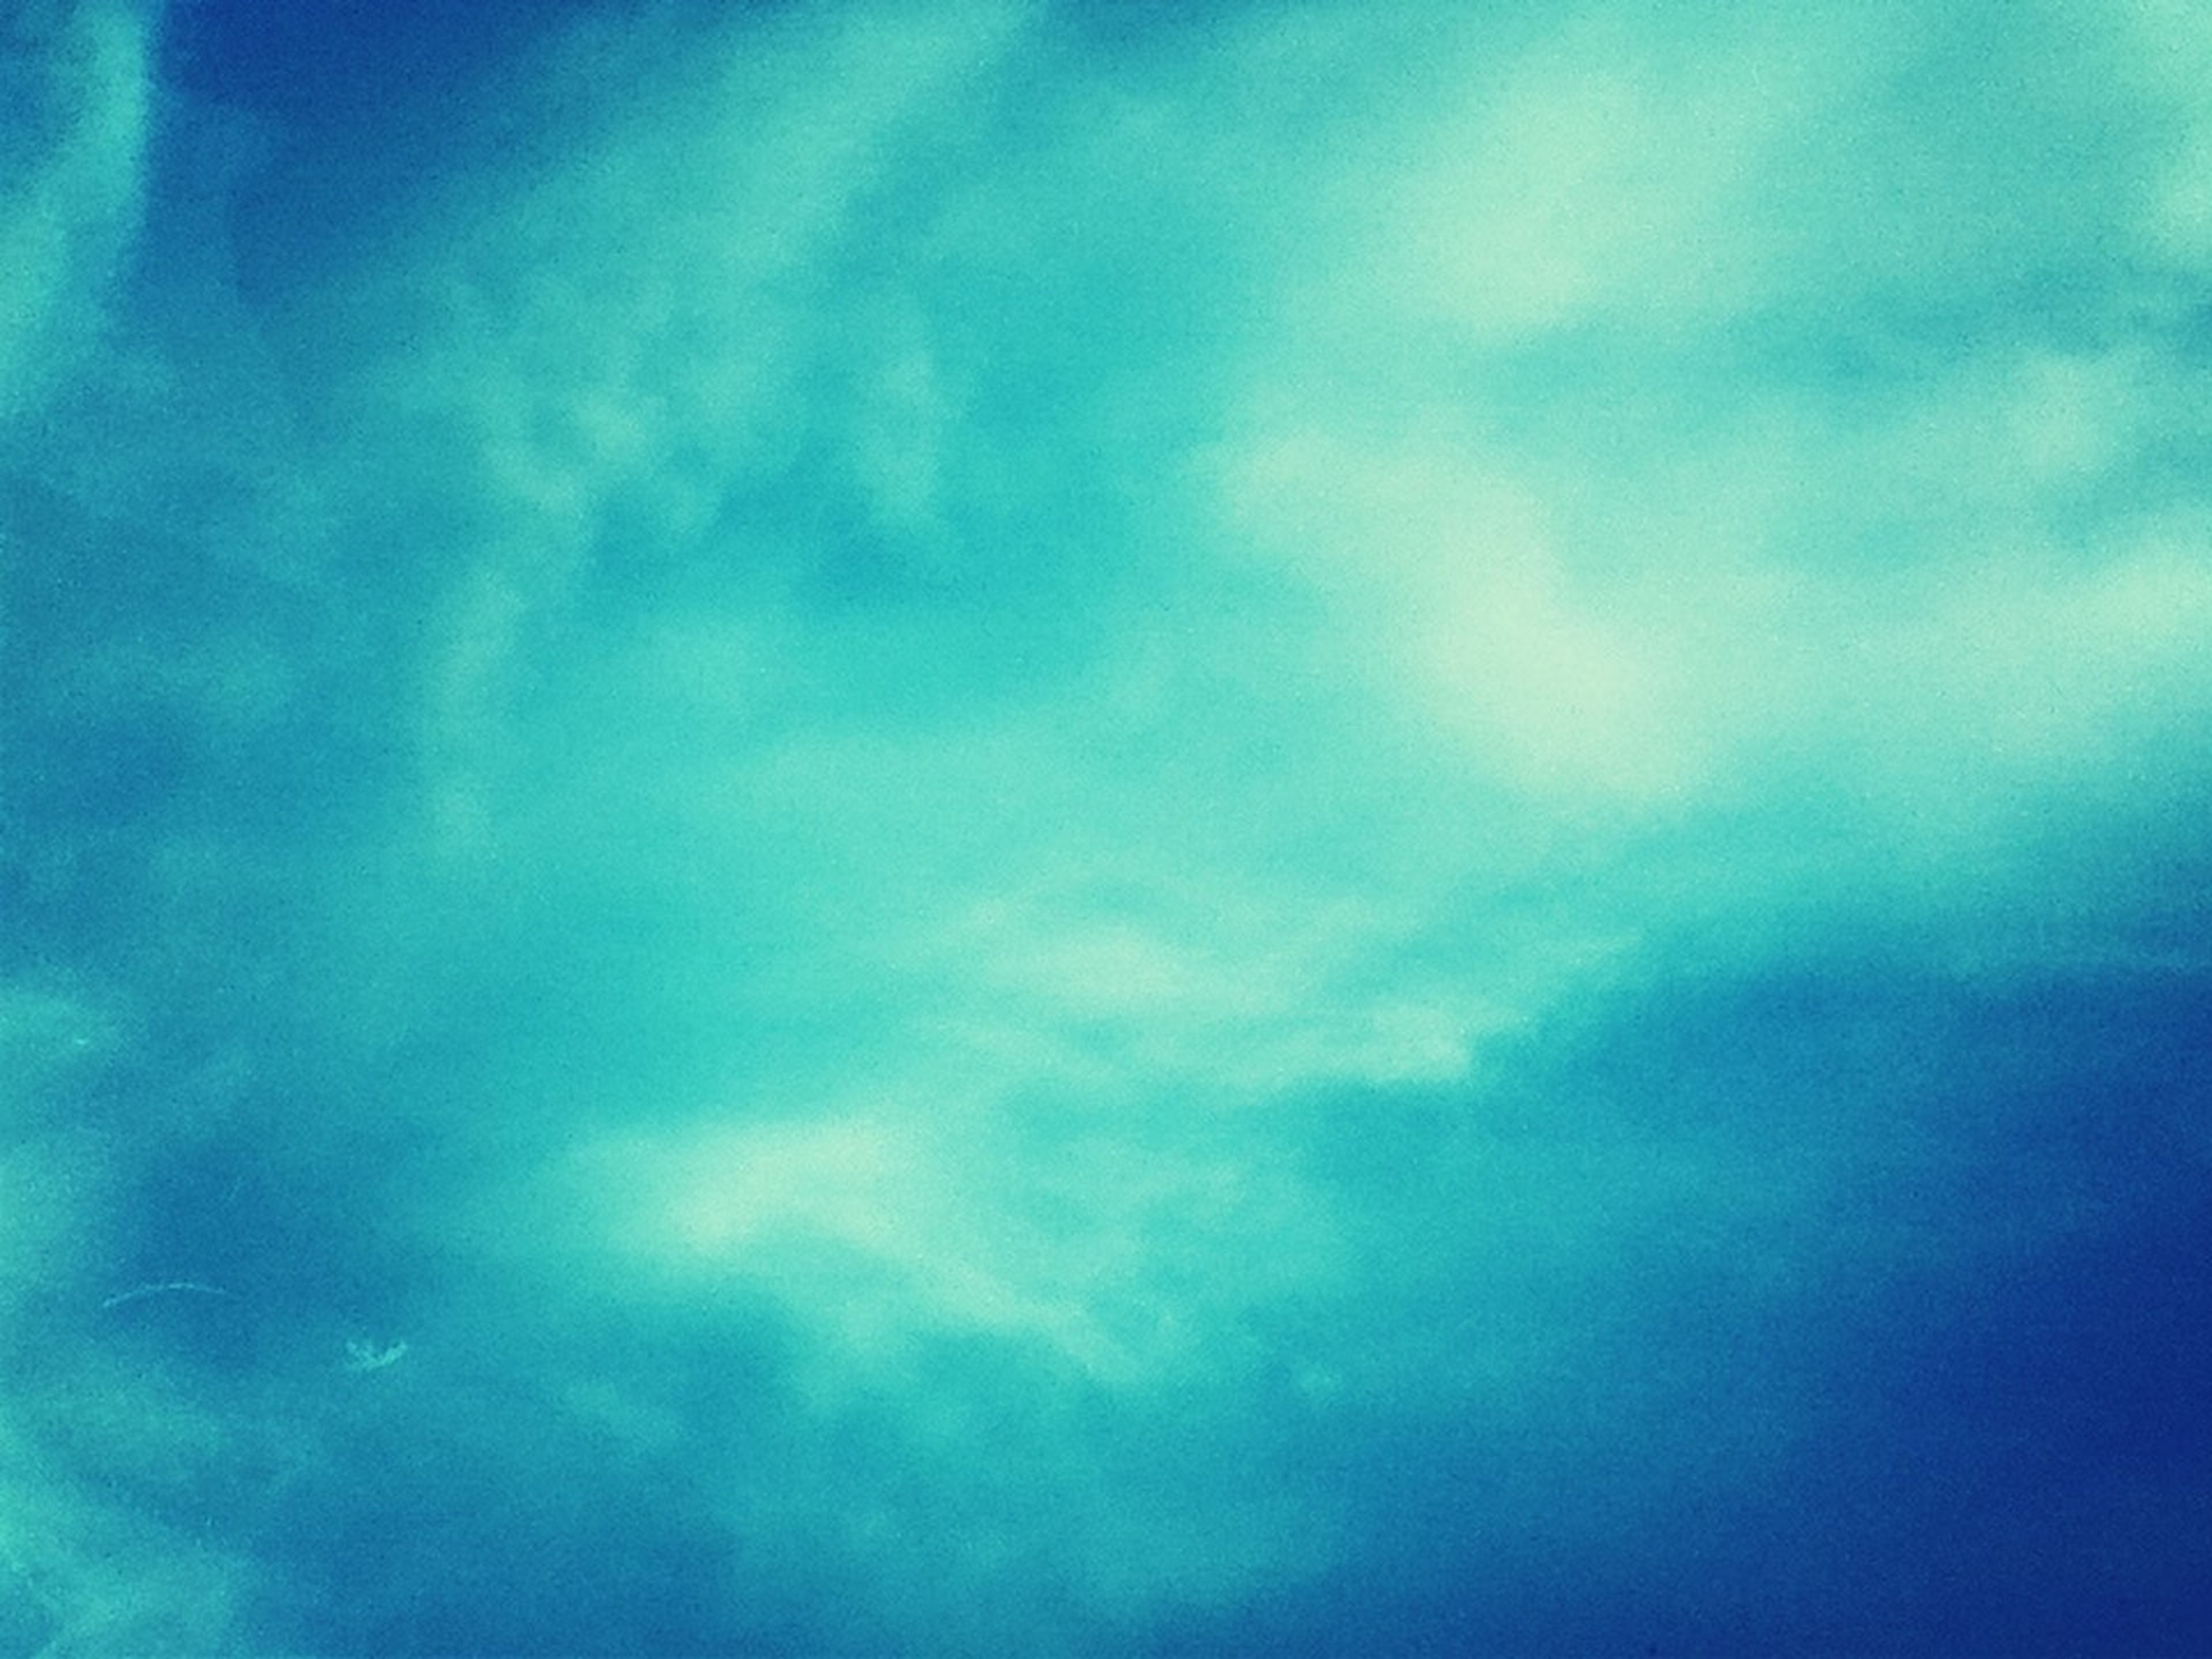 blue, low angle view, sky, cloud - sky, beauty in nature, tranquility, scenics, sky only, nature, cloudy, tranquil scene, backgrounds, cloud, idyllic, cloudscape, full frame, outdoors, no people, weather, majestic